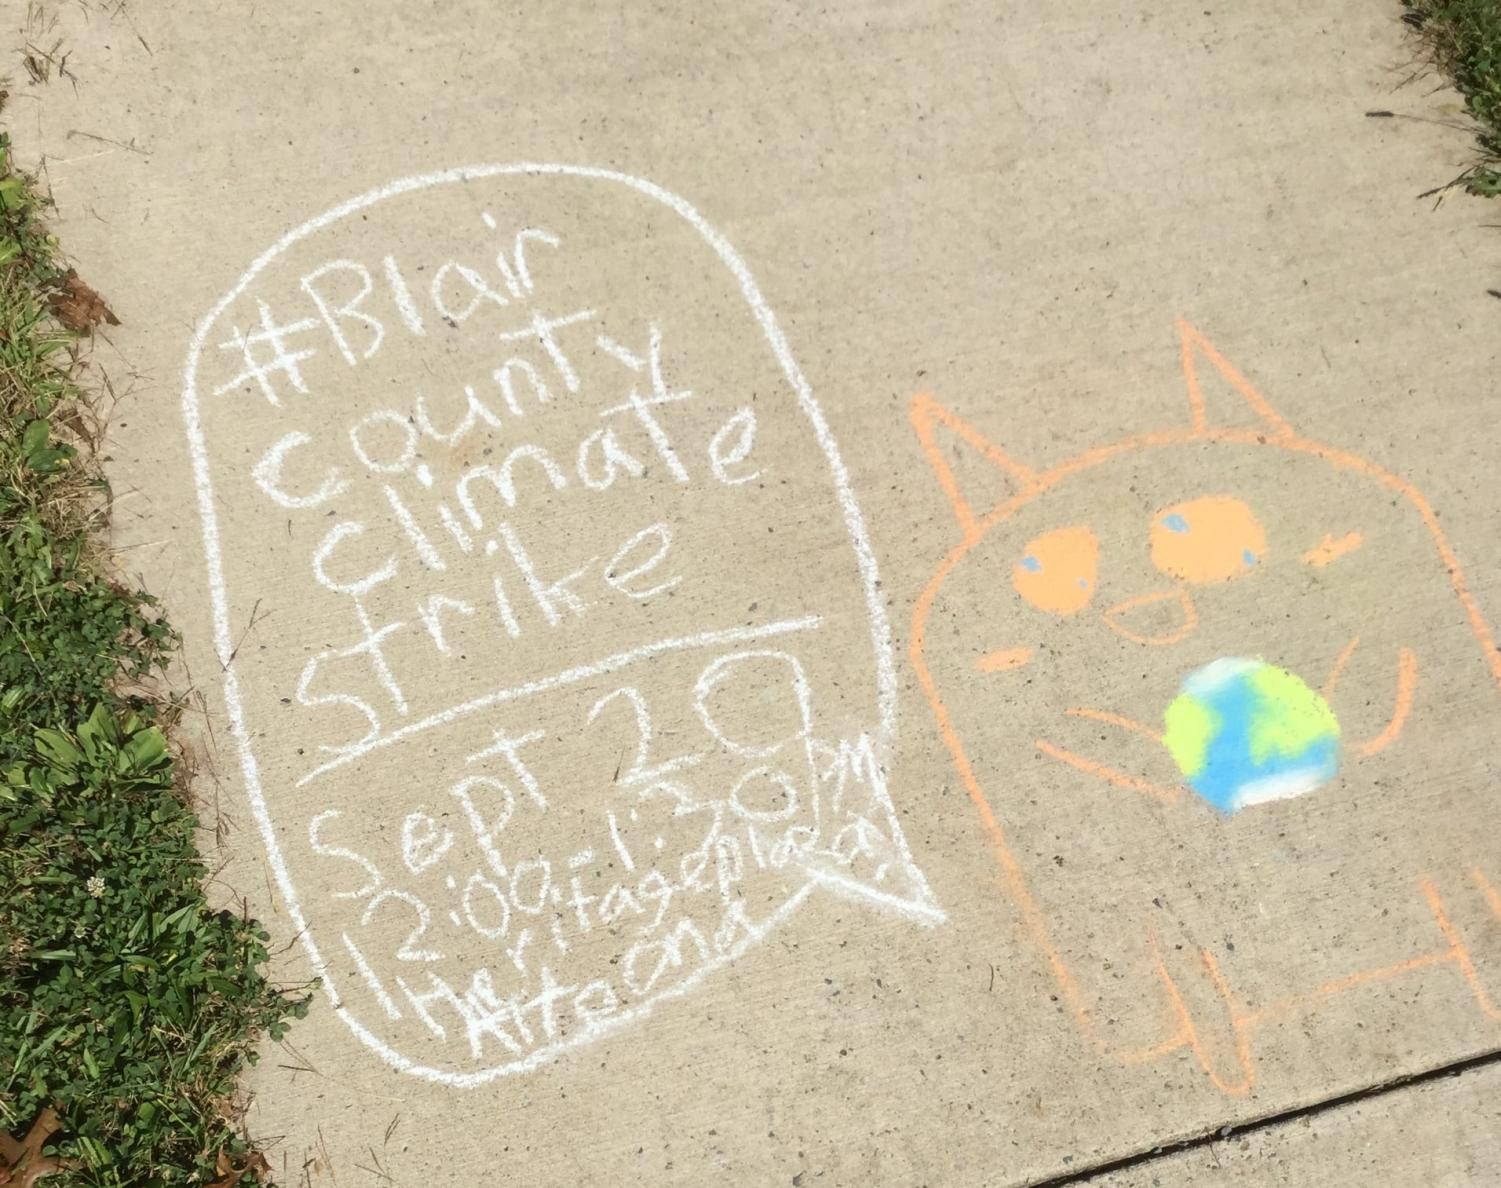 The Blair County Climate Strike will hold their first ever event on Friday.